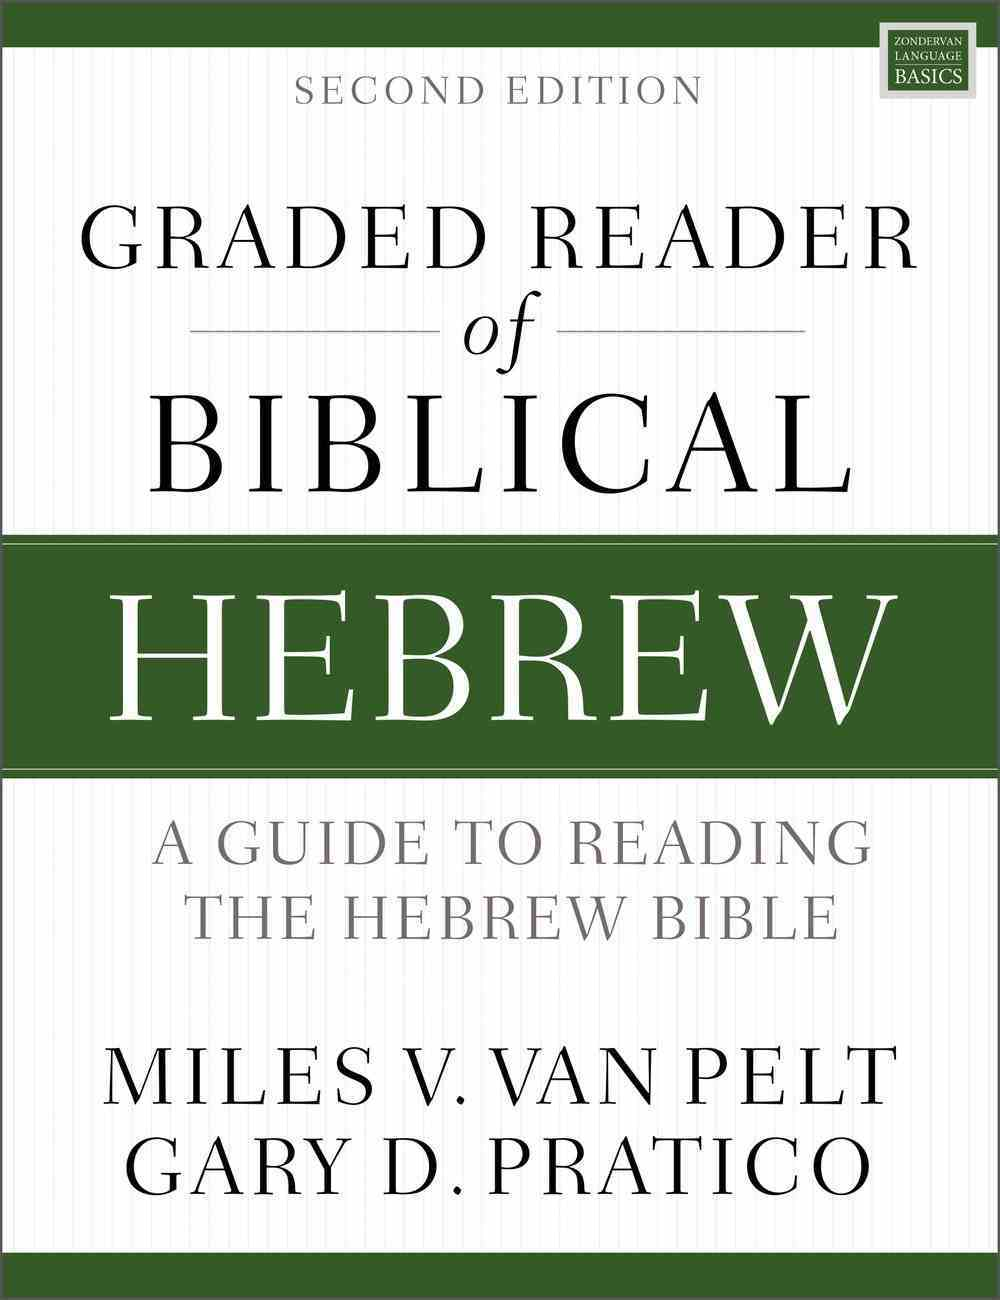 Graded Reader of Biblical Hebrew : A Guide to Reading the Hebrew Bible (2nd Edition) (Zondervan Language Basics Series) Paperback